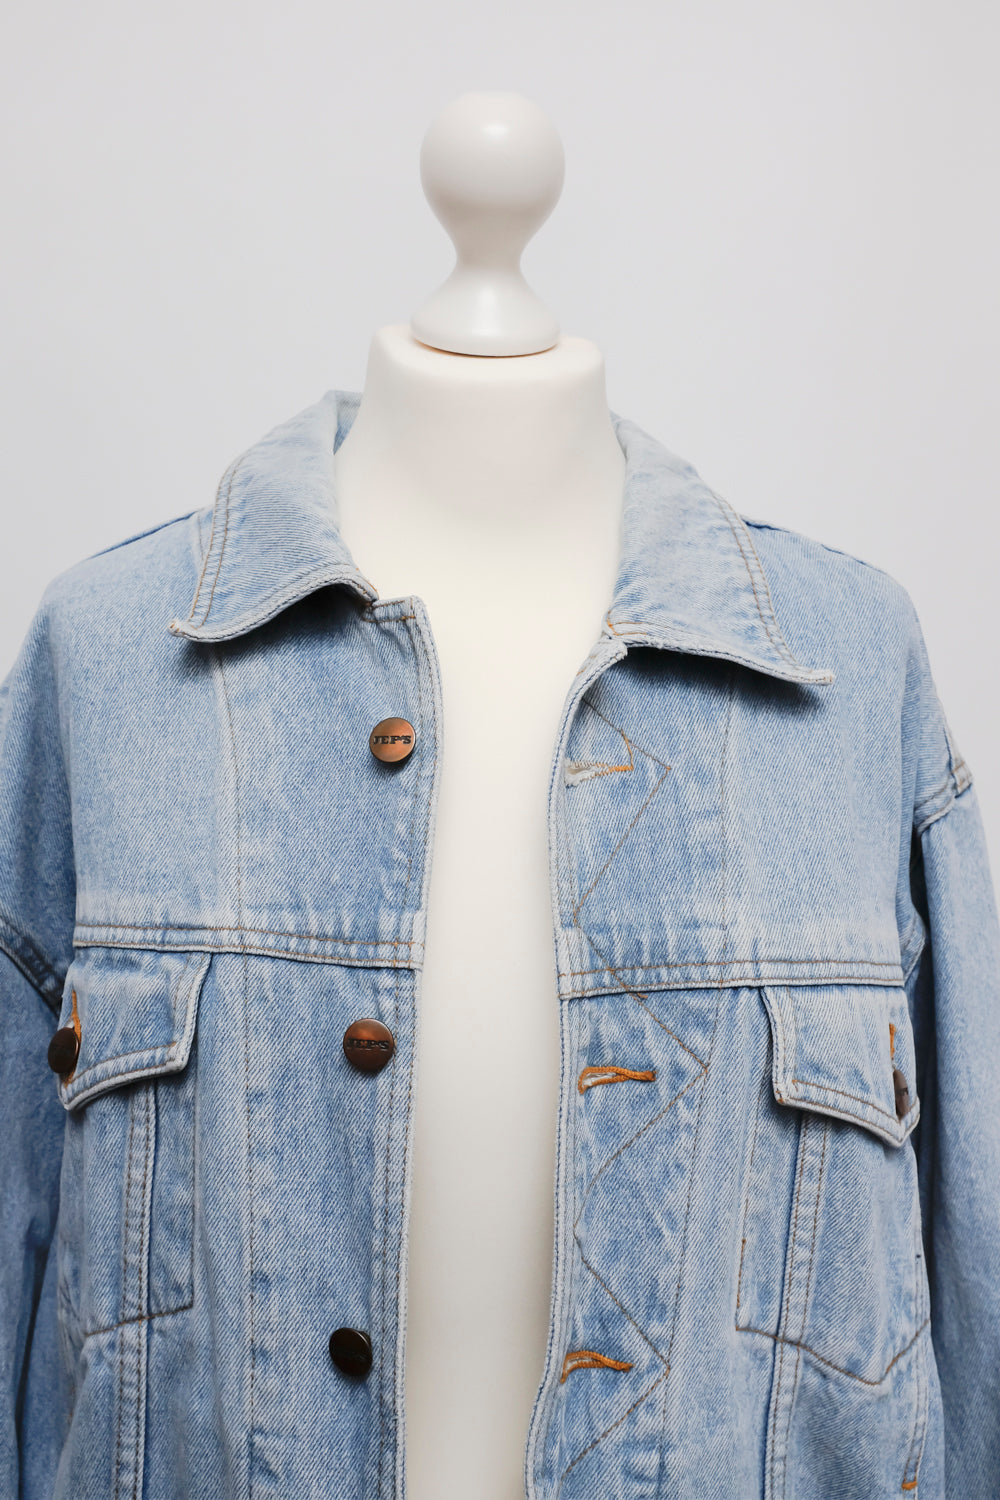 0015_PALE BLUE VINTAGE JEANS DENIM JACKET